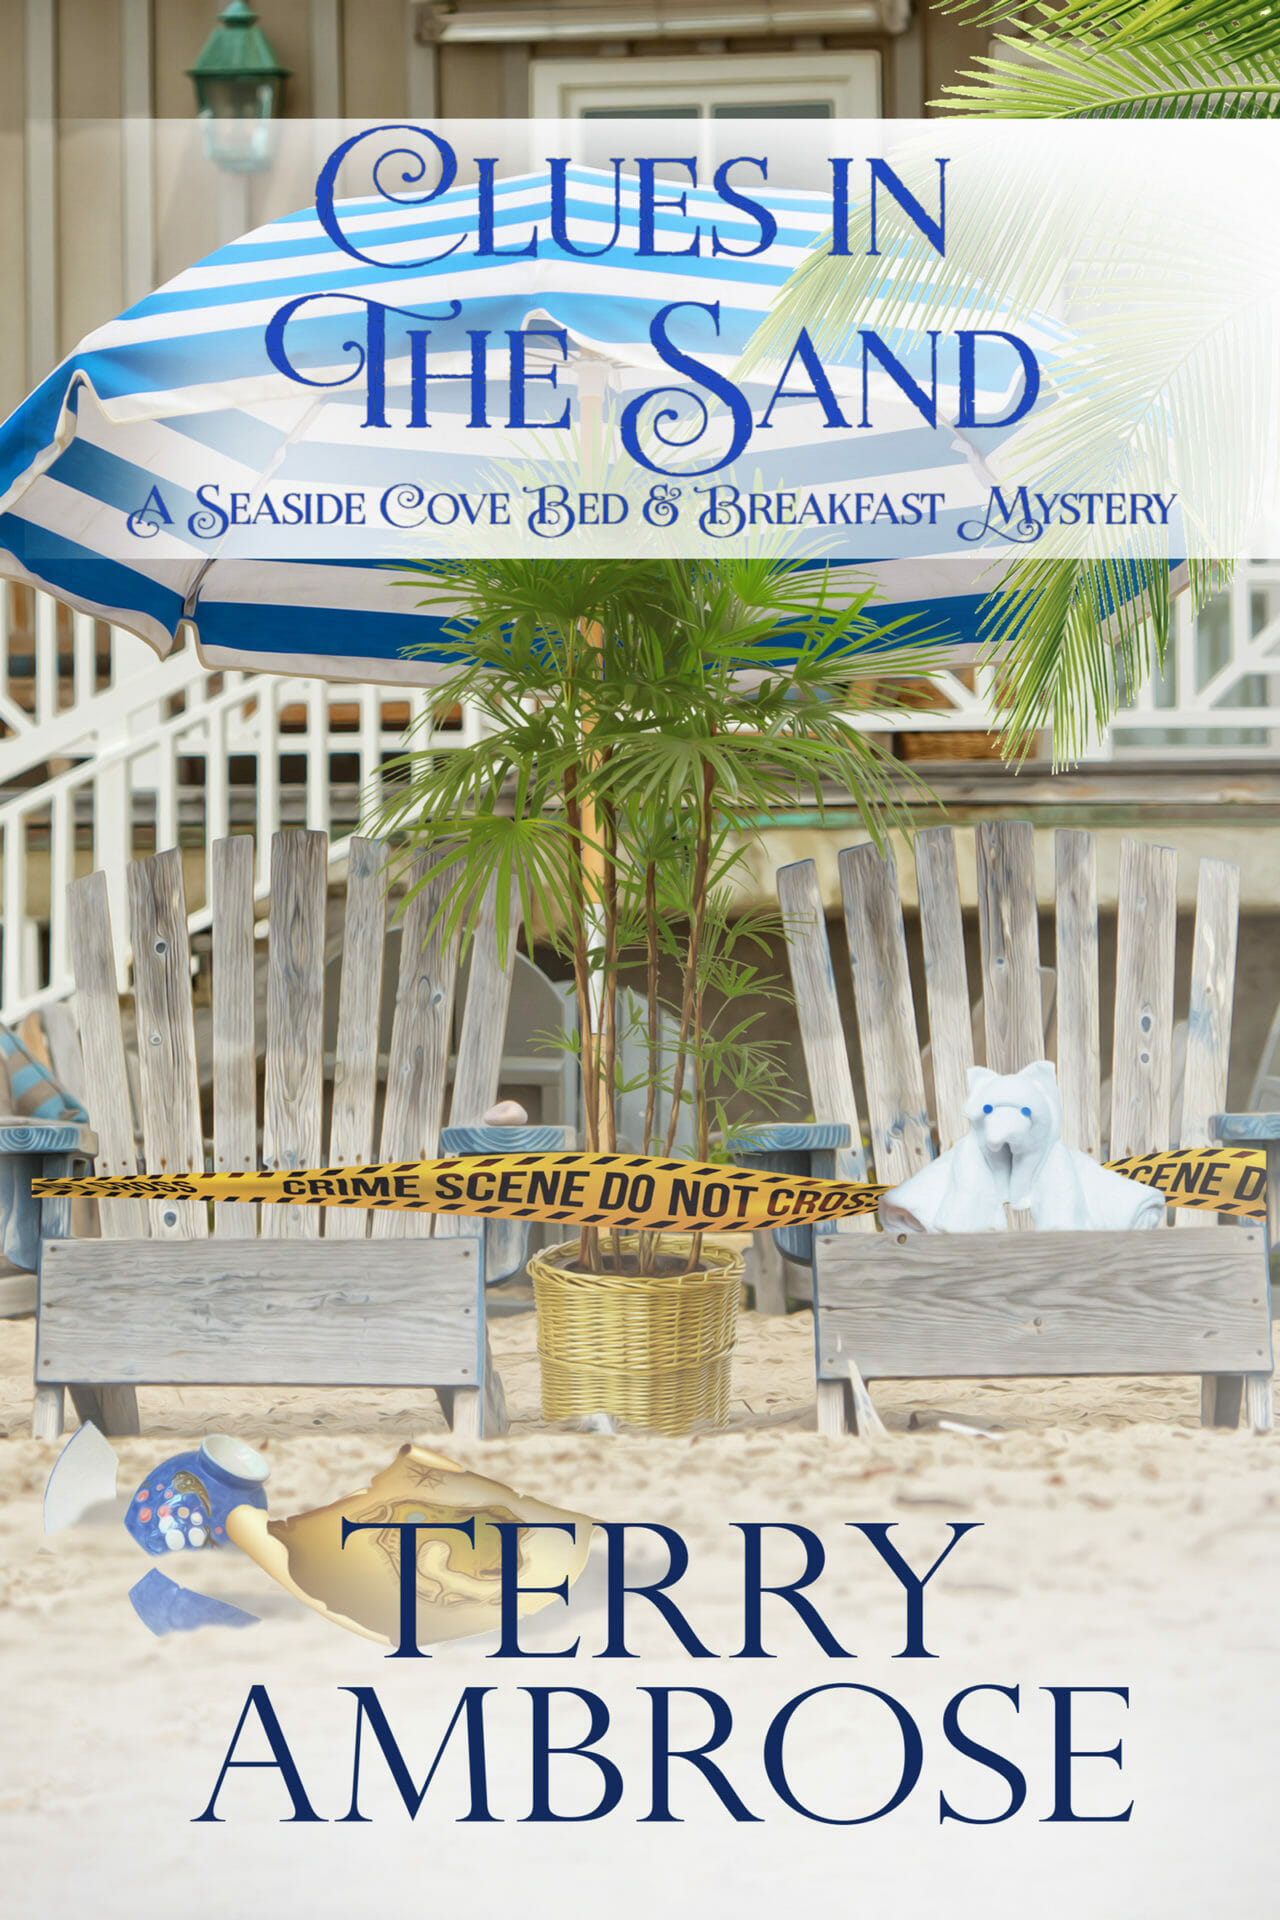 Clues in the Sand - A Seaside Cove Bed & Breakfast Mystery